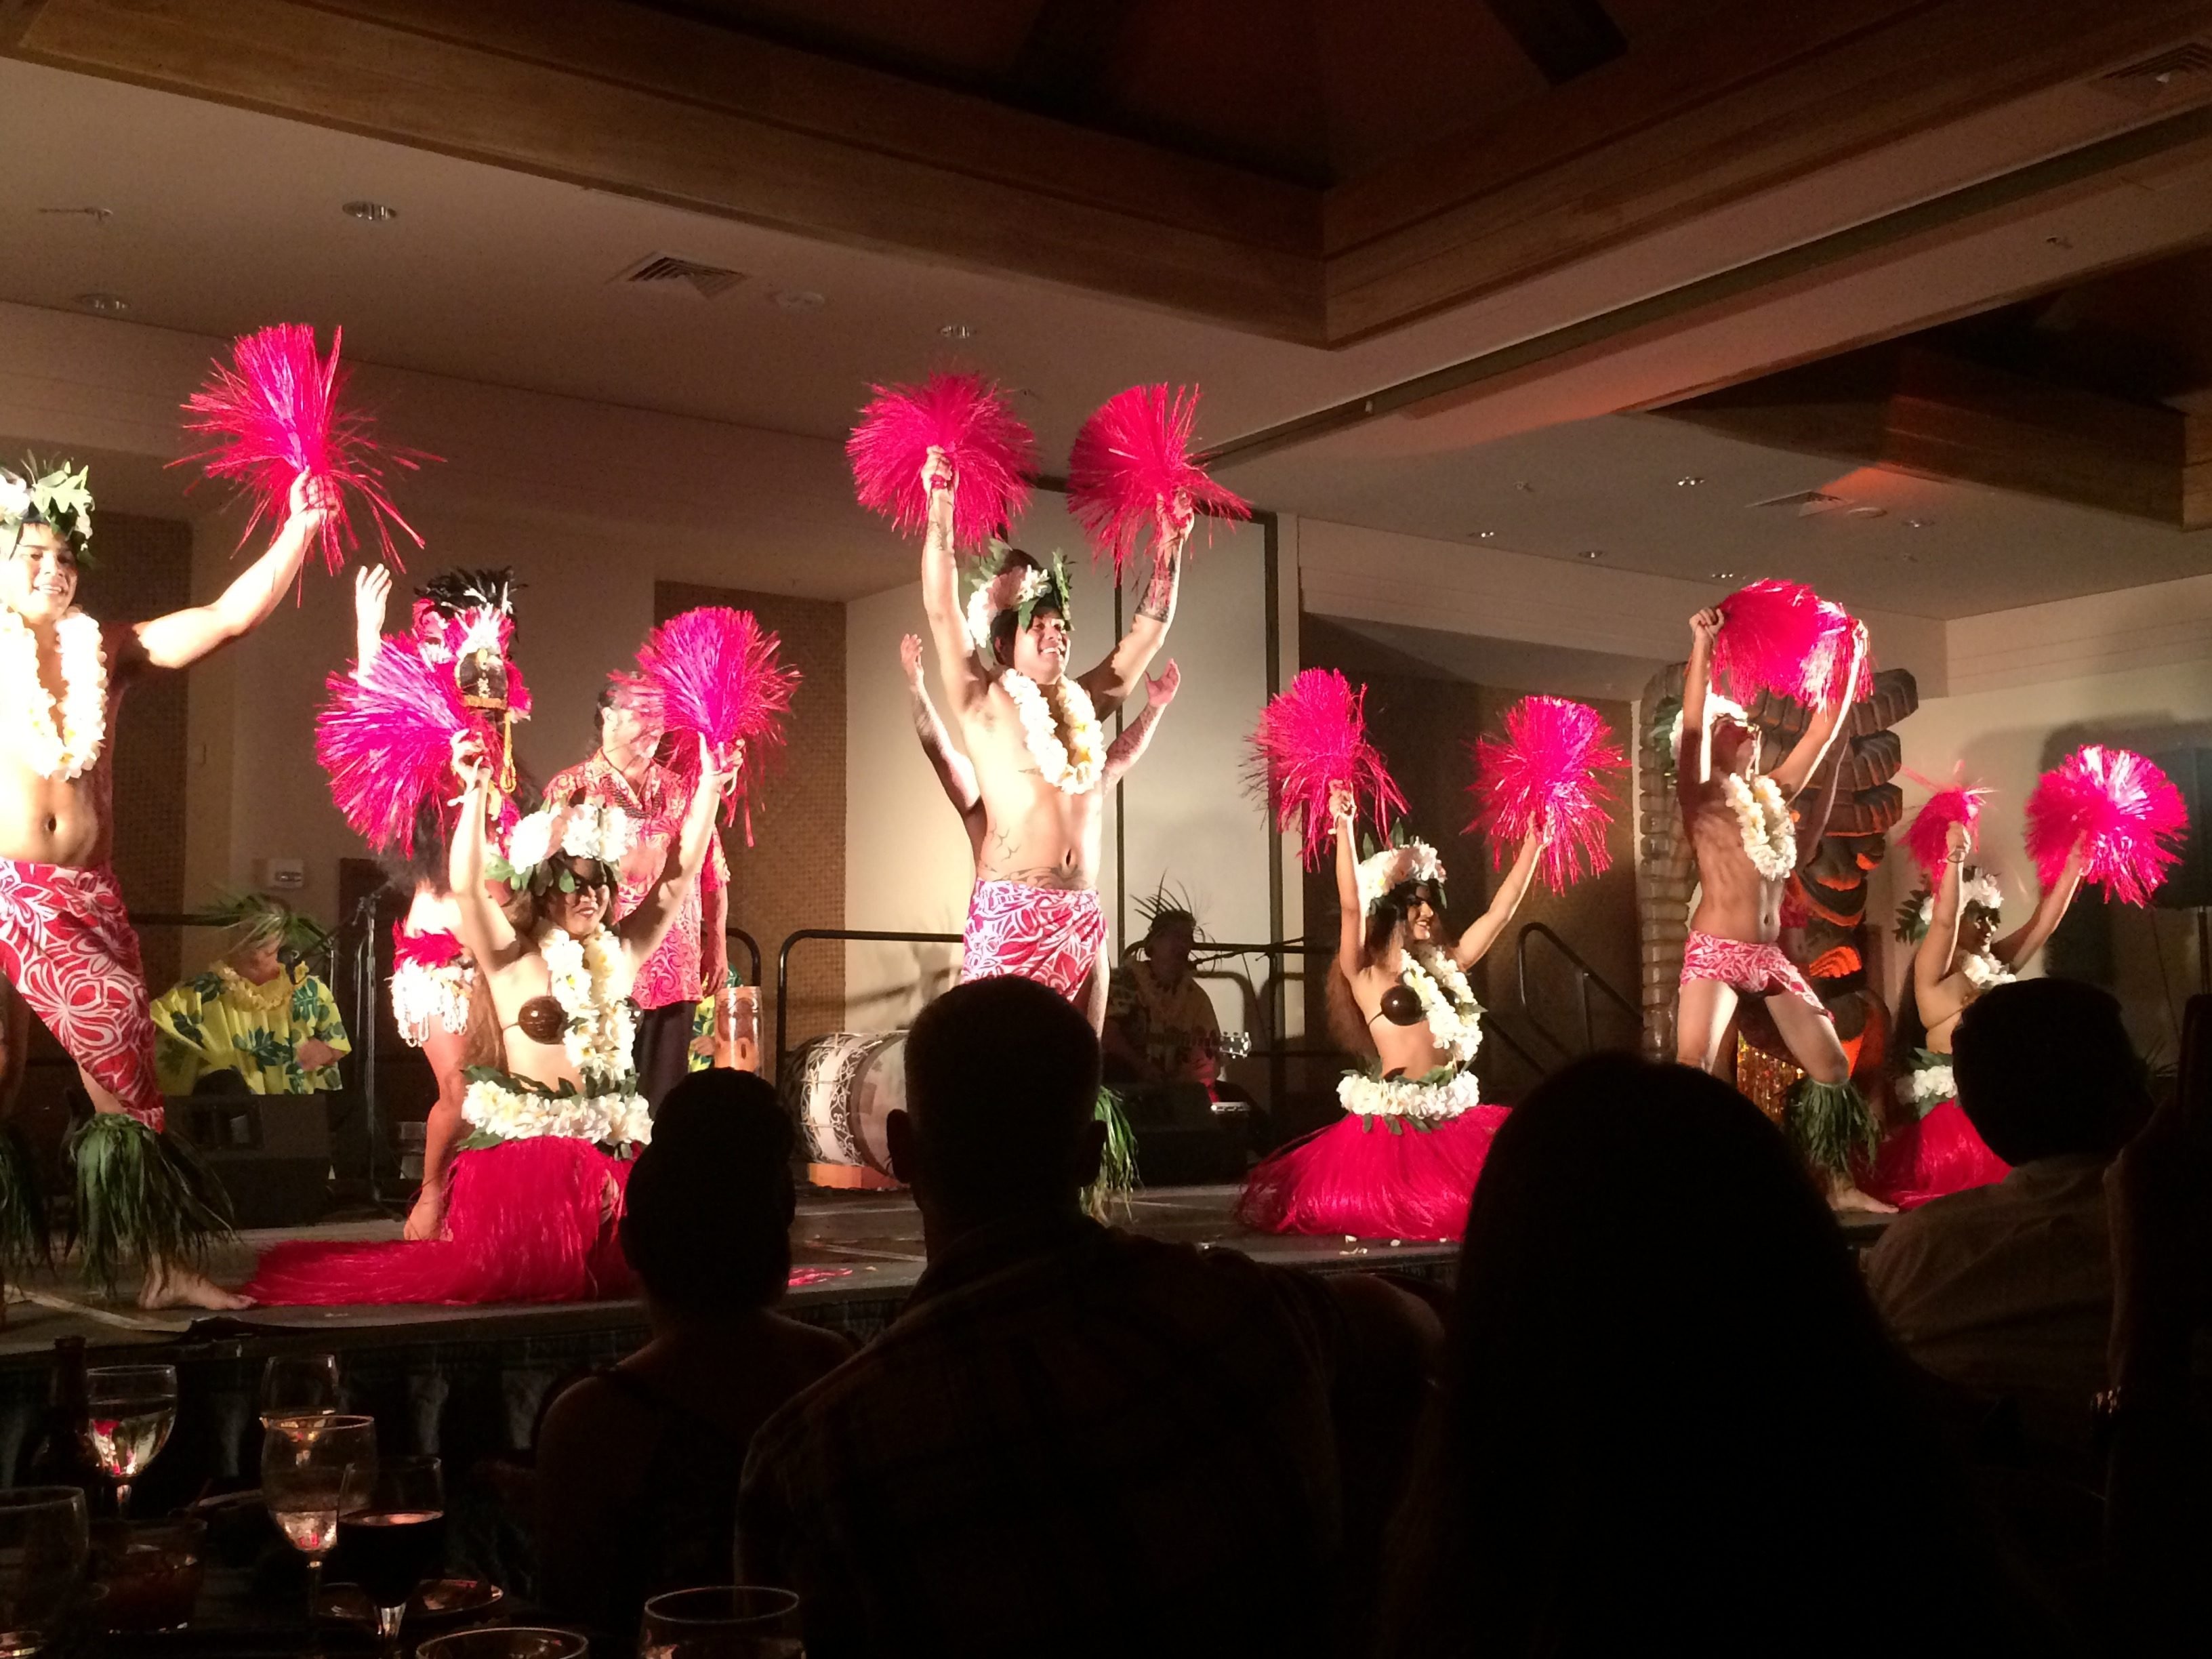 Grand Hyatt Kauai Hawaii Luau